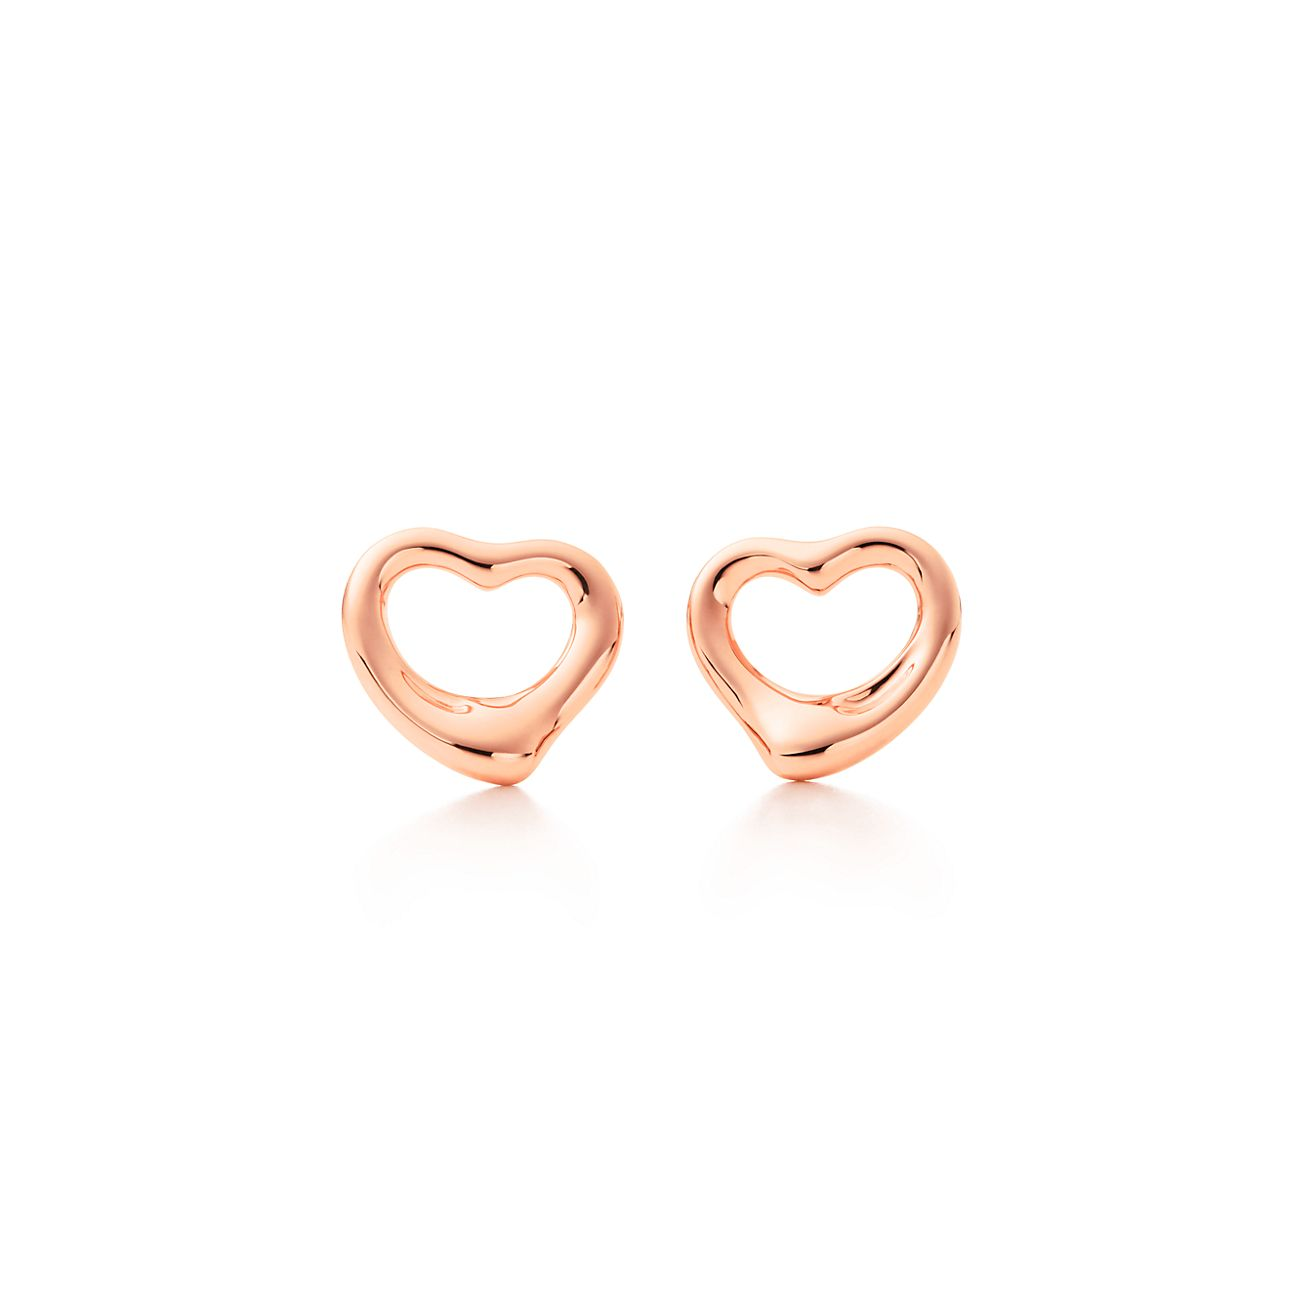 earrings listing zoom jewelry rose post heart gold fullxfull il